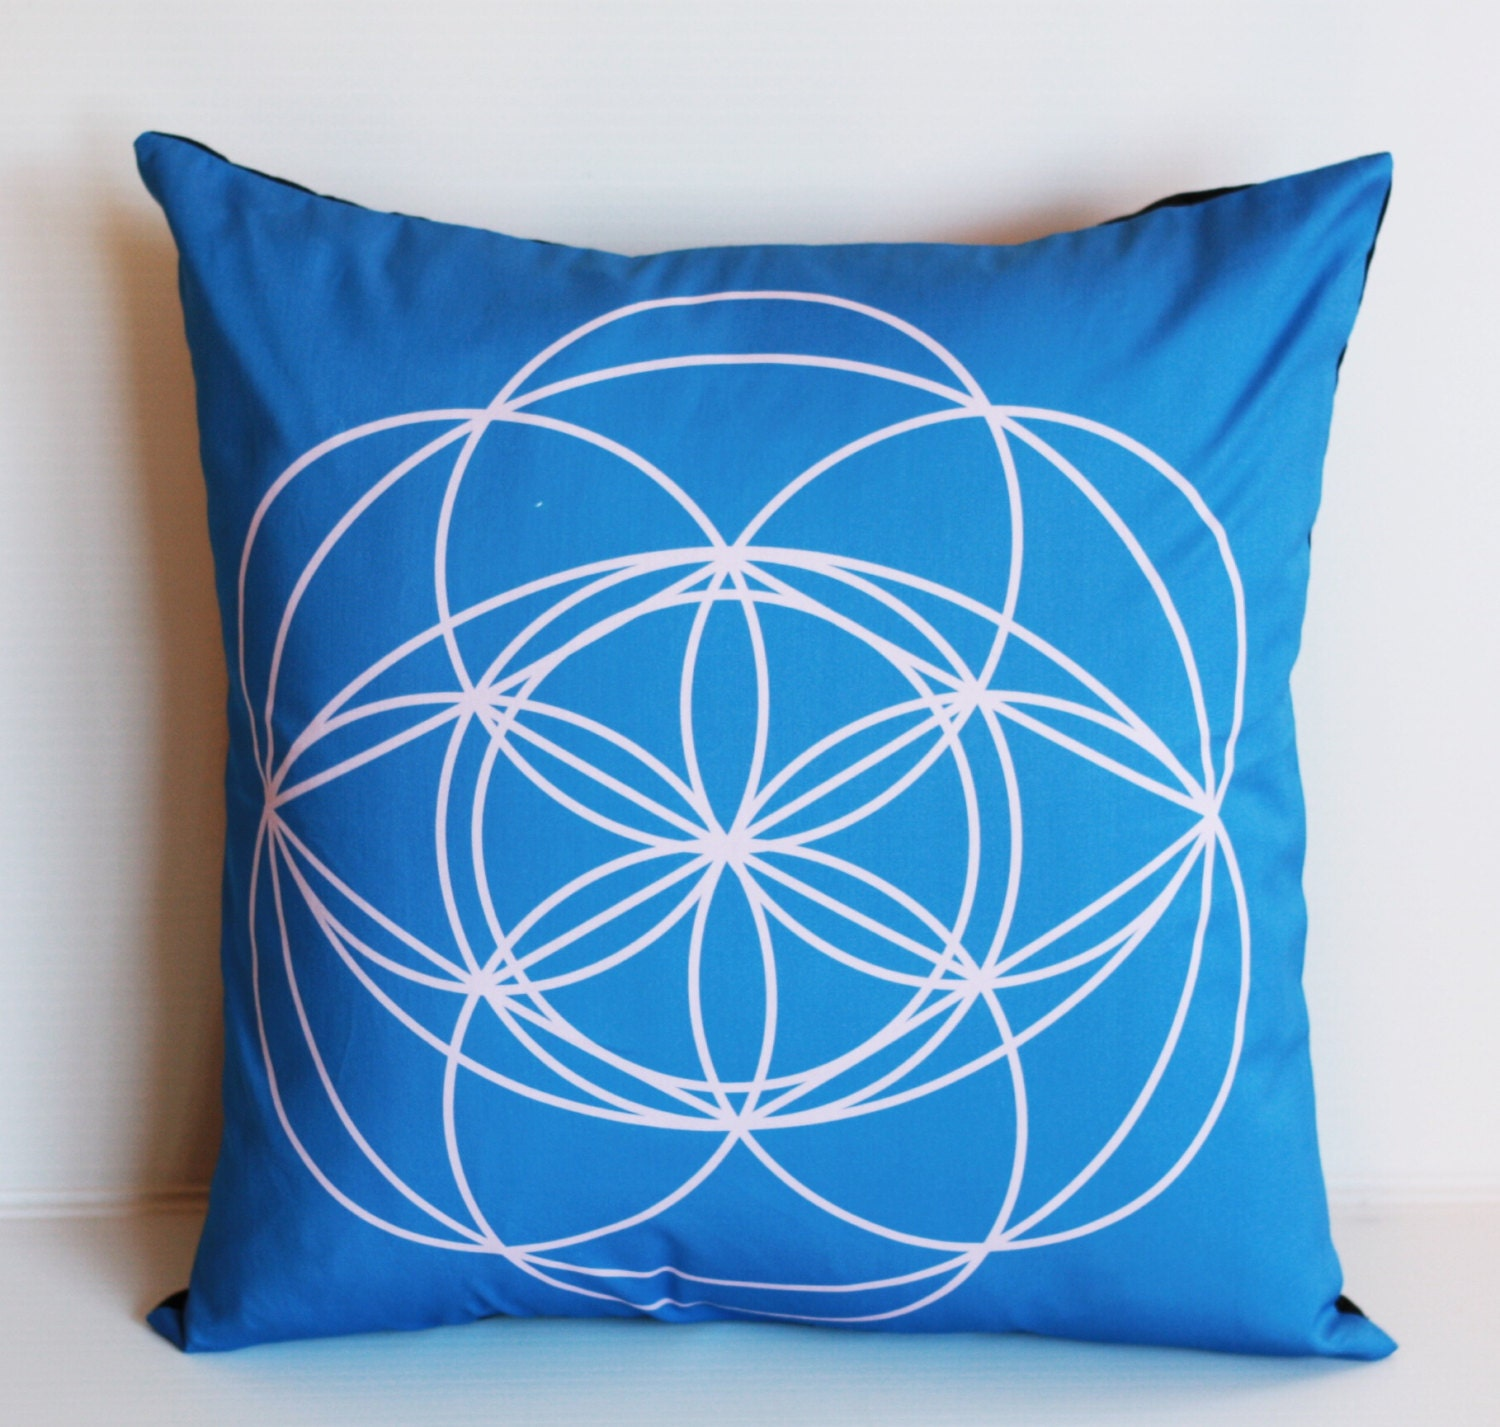 Organic Cotton Throw Pillow Inserts : Square blue cushion cover eco friendly organic cotton throw